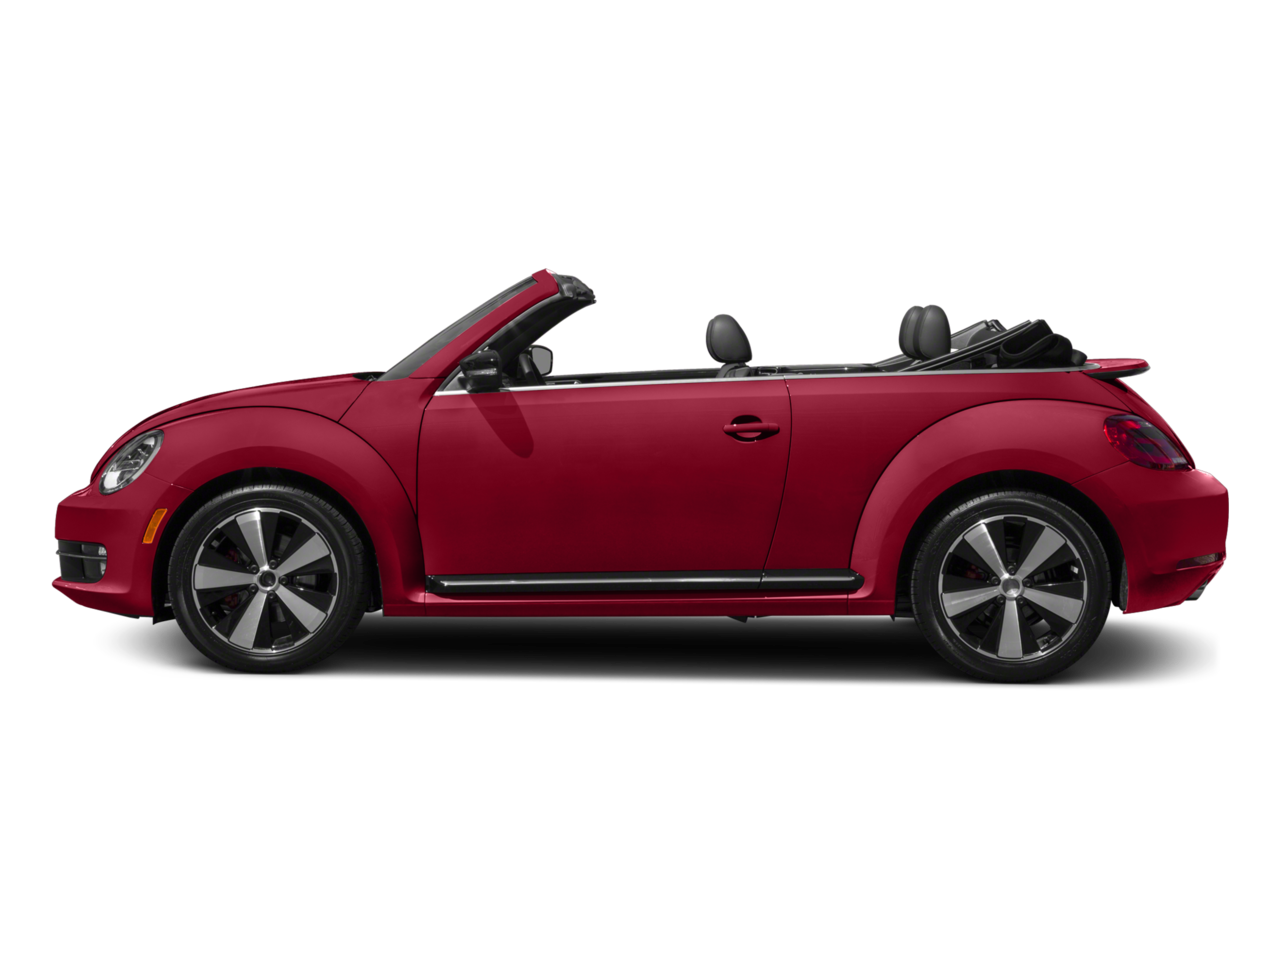 2017 VW Beetle Convertible